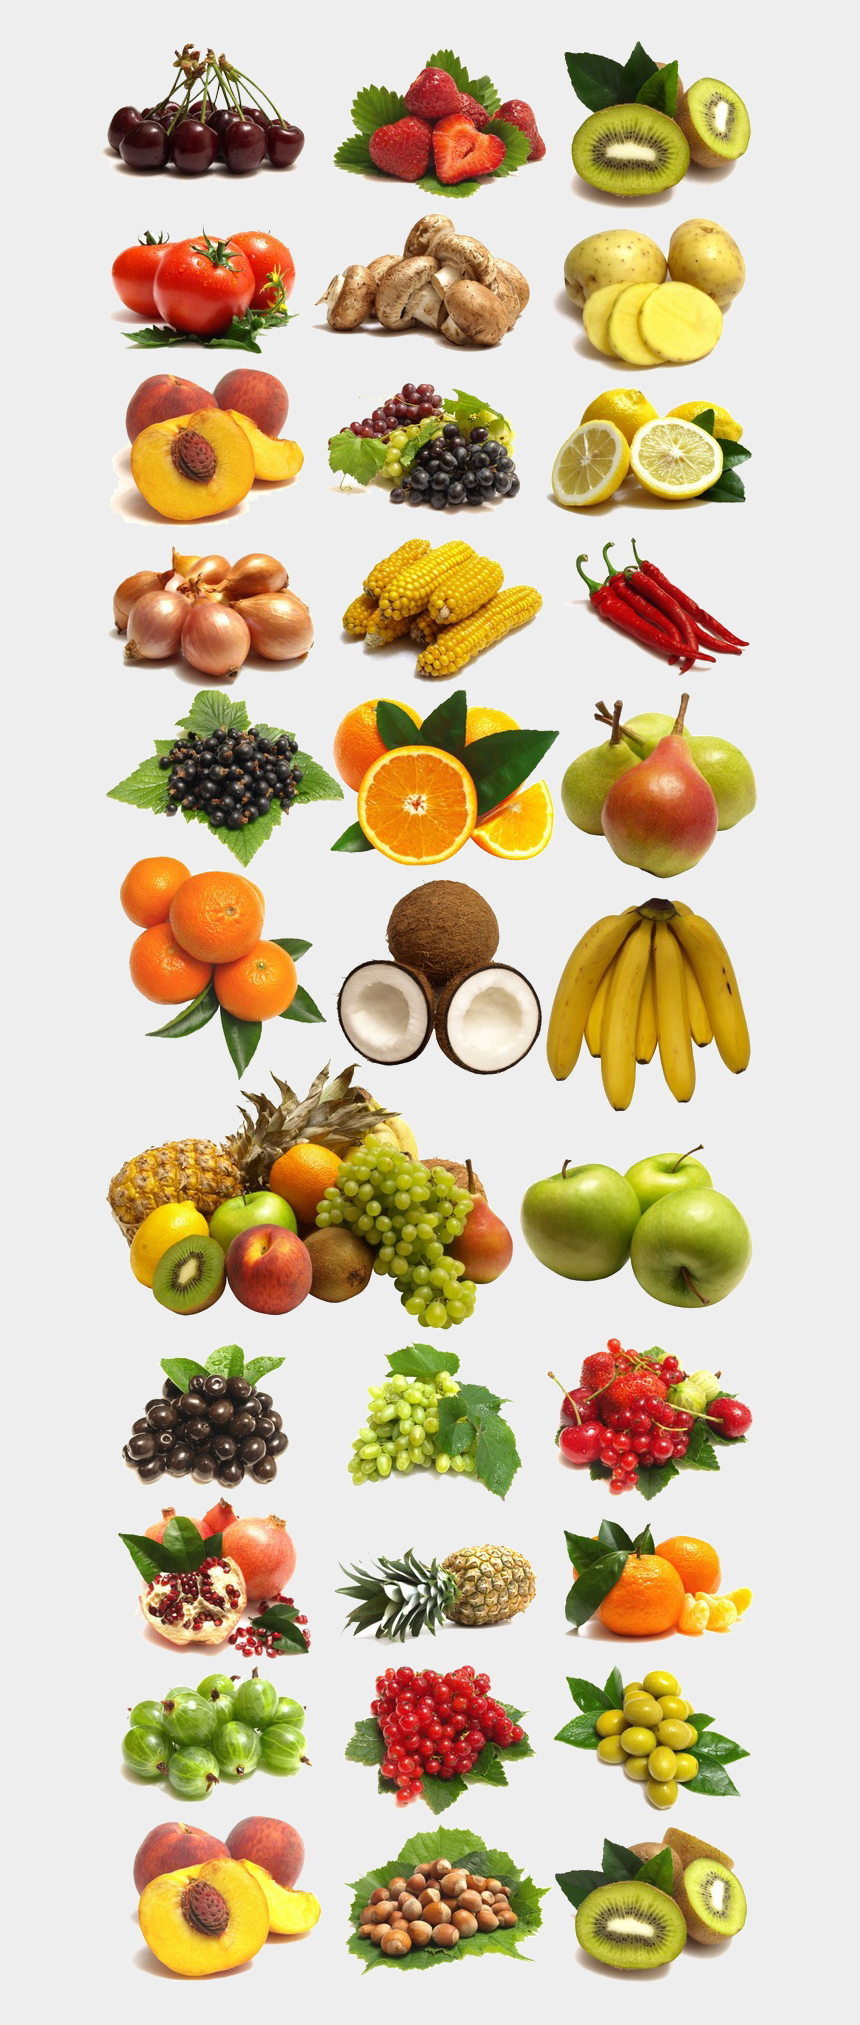 fruits clipart, Cartoons - And Of Vegetables Collection Large Fruits Clipart - Fruits Png